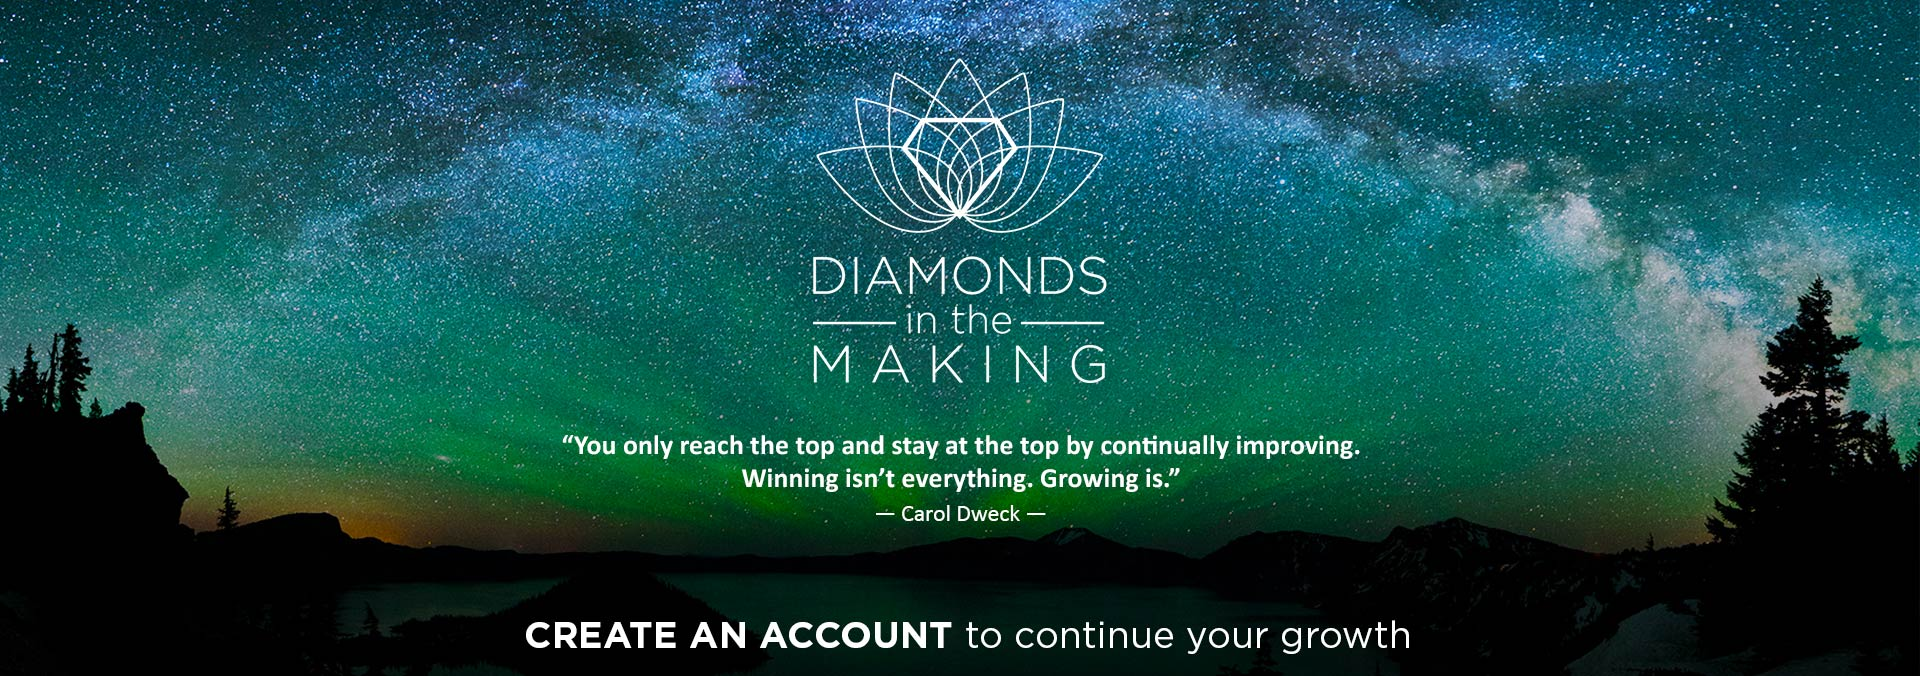 """You only reach the top and stay at the top by continually improving. Winning isn't everything. Growing is.""— Carol Dweck. Create an account to continue your growth."